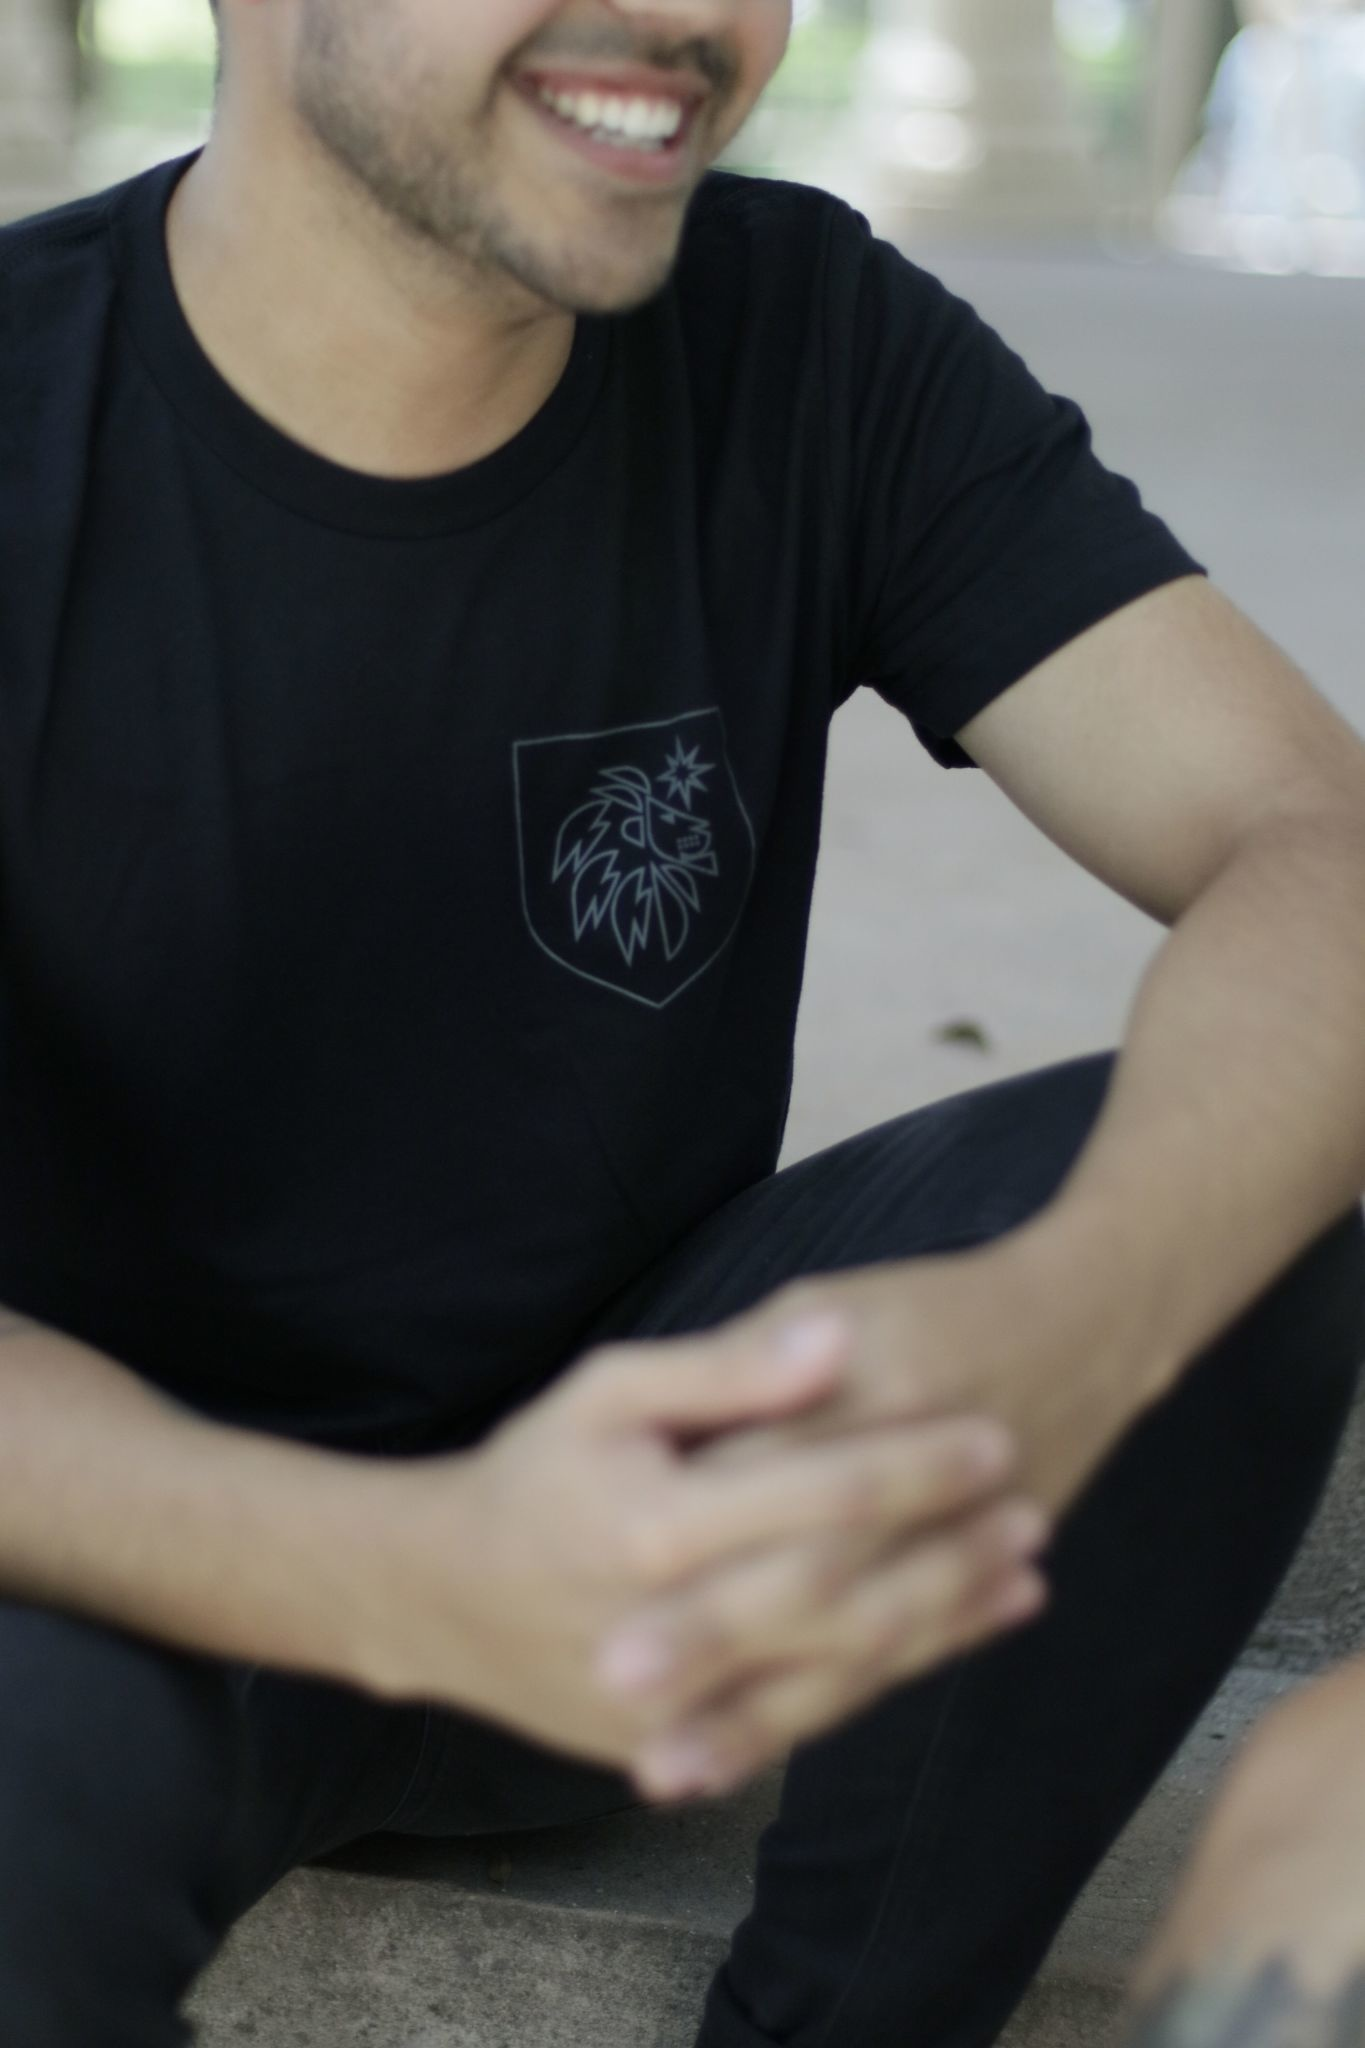 SEACOAST MUSIC BLACK POCKET LOGO